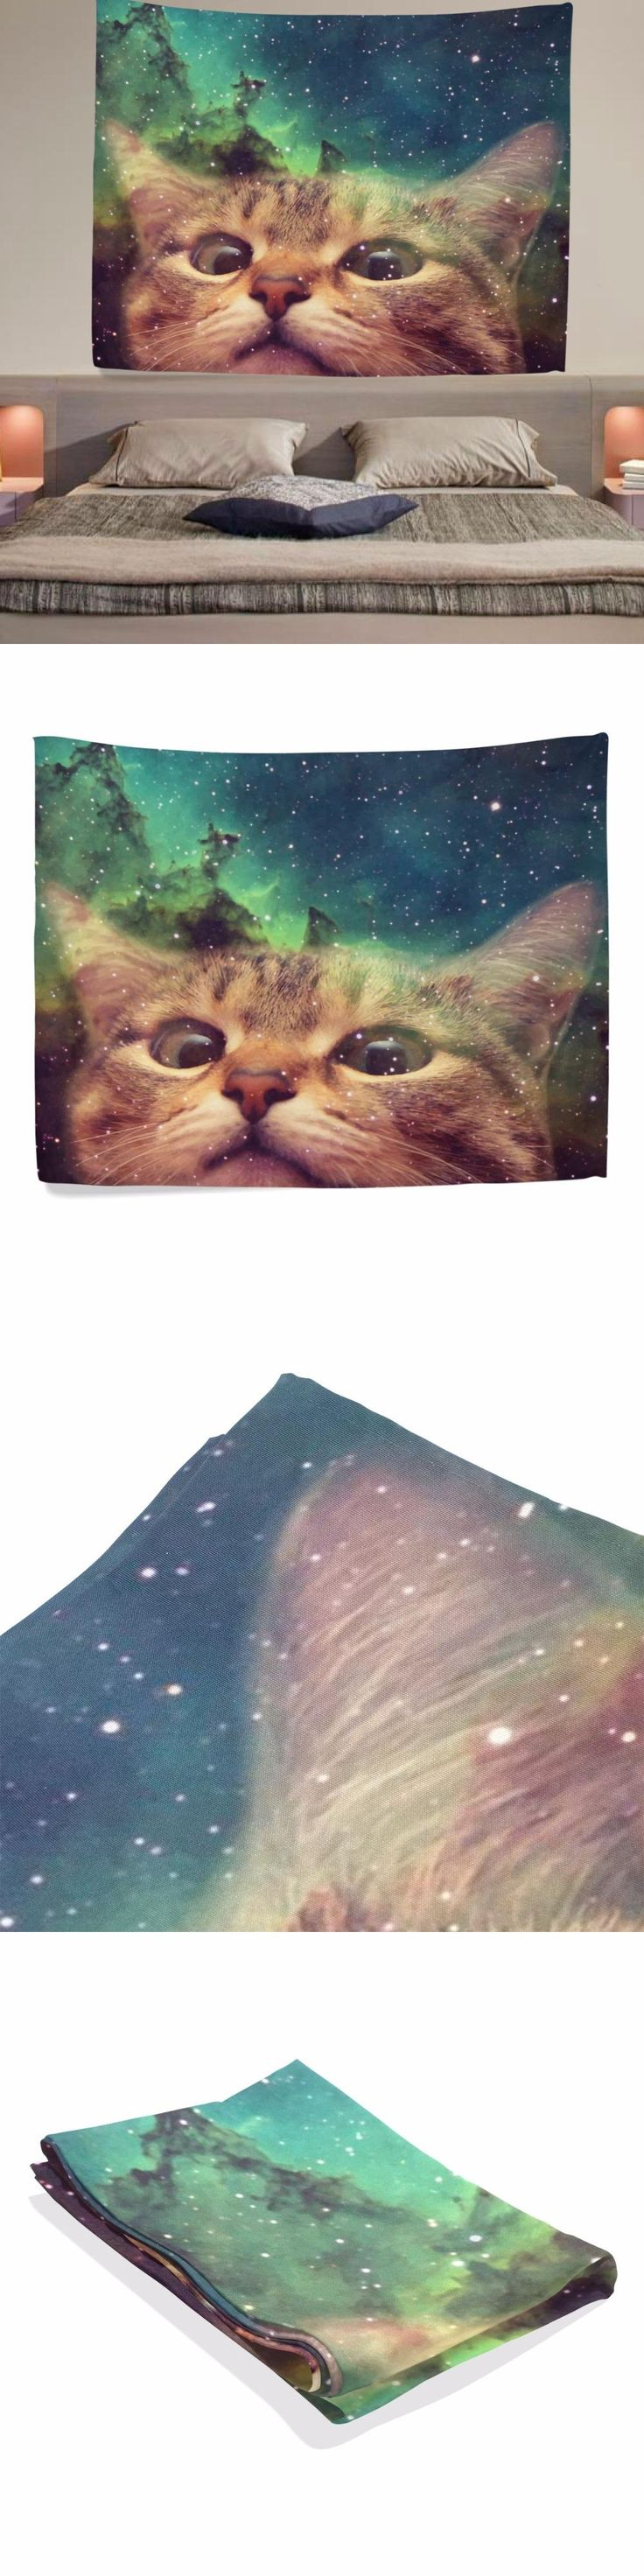 Tapestry Blue Indian Mandala Tapestry Hippie Bohemian Rectangle Indian 153cm X 102cm starry sky cat